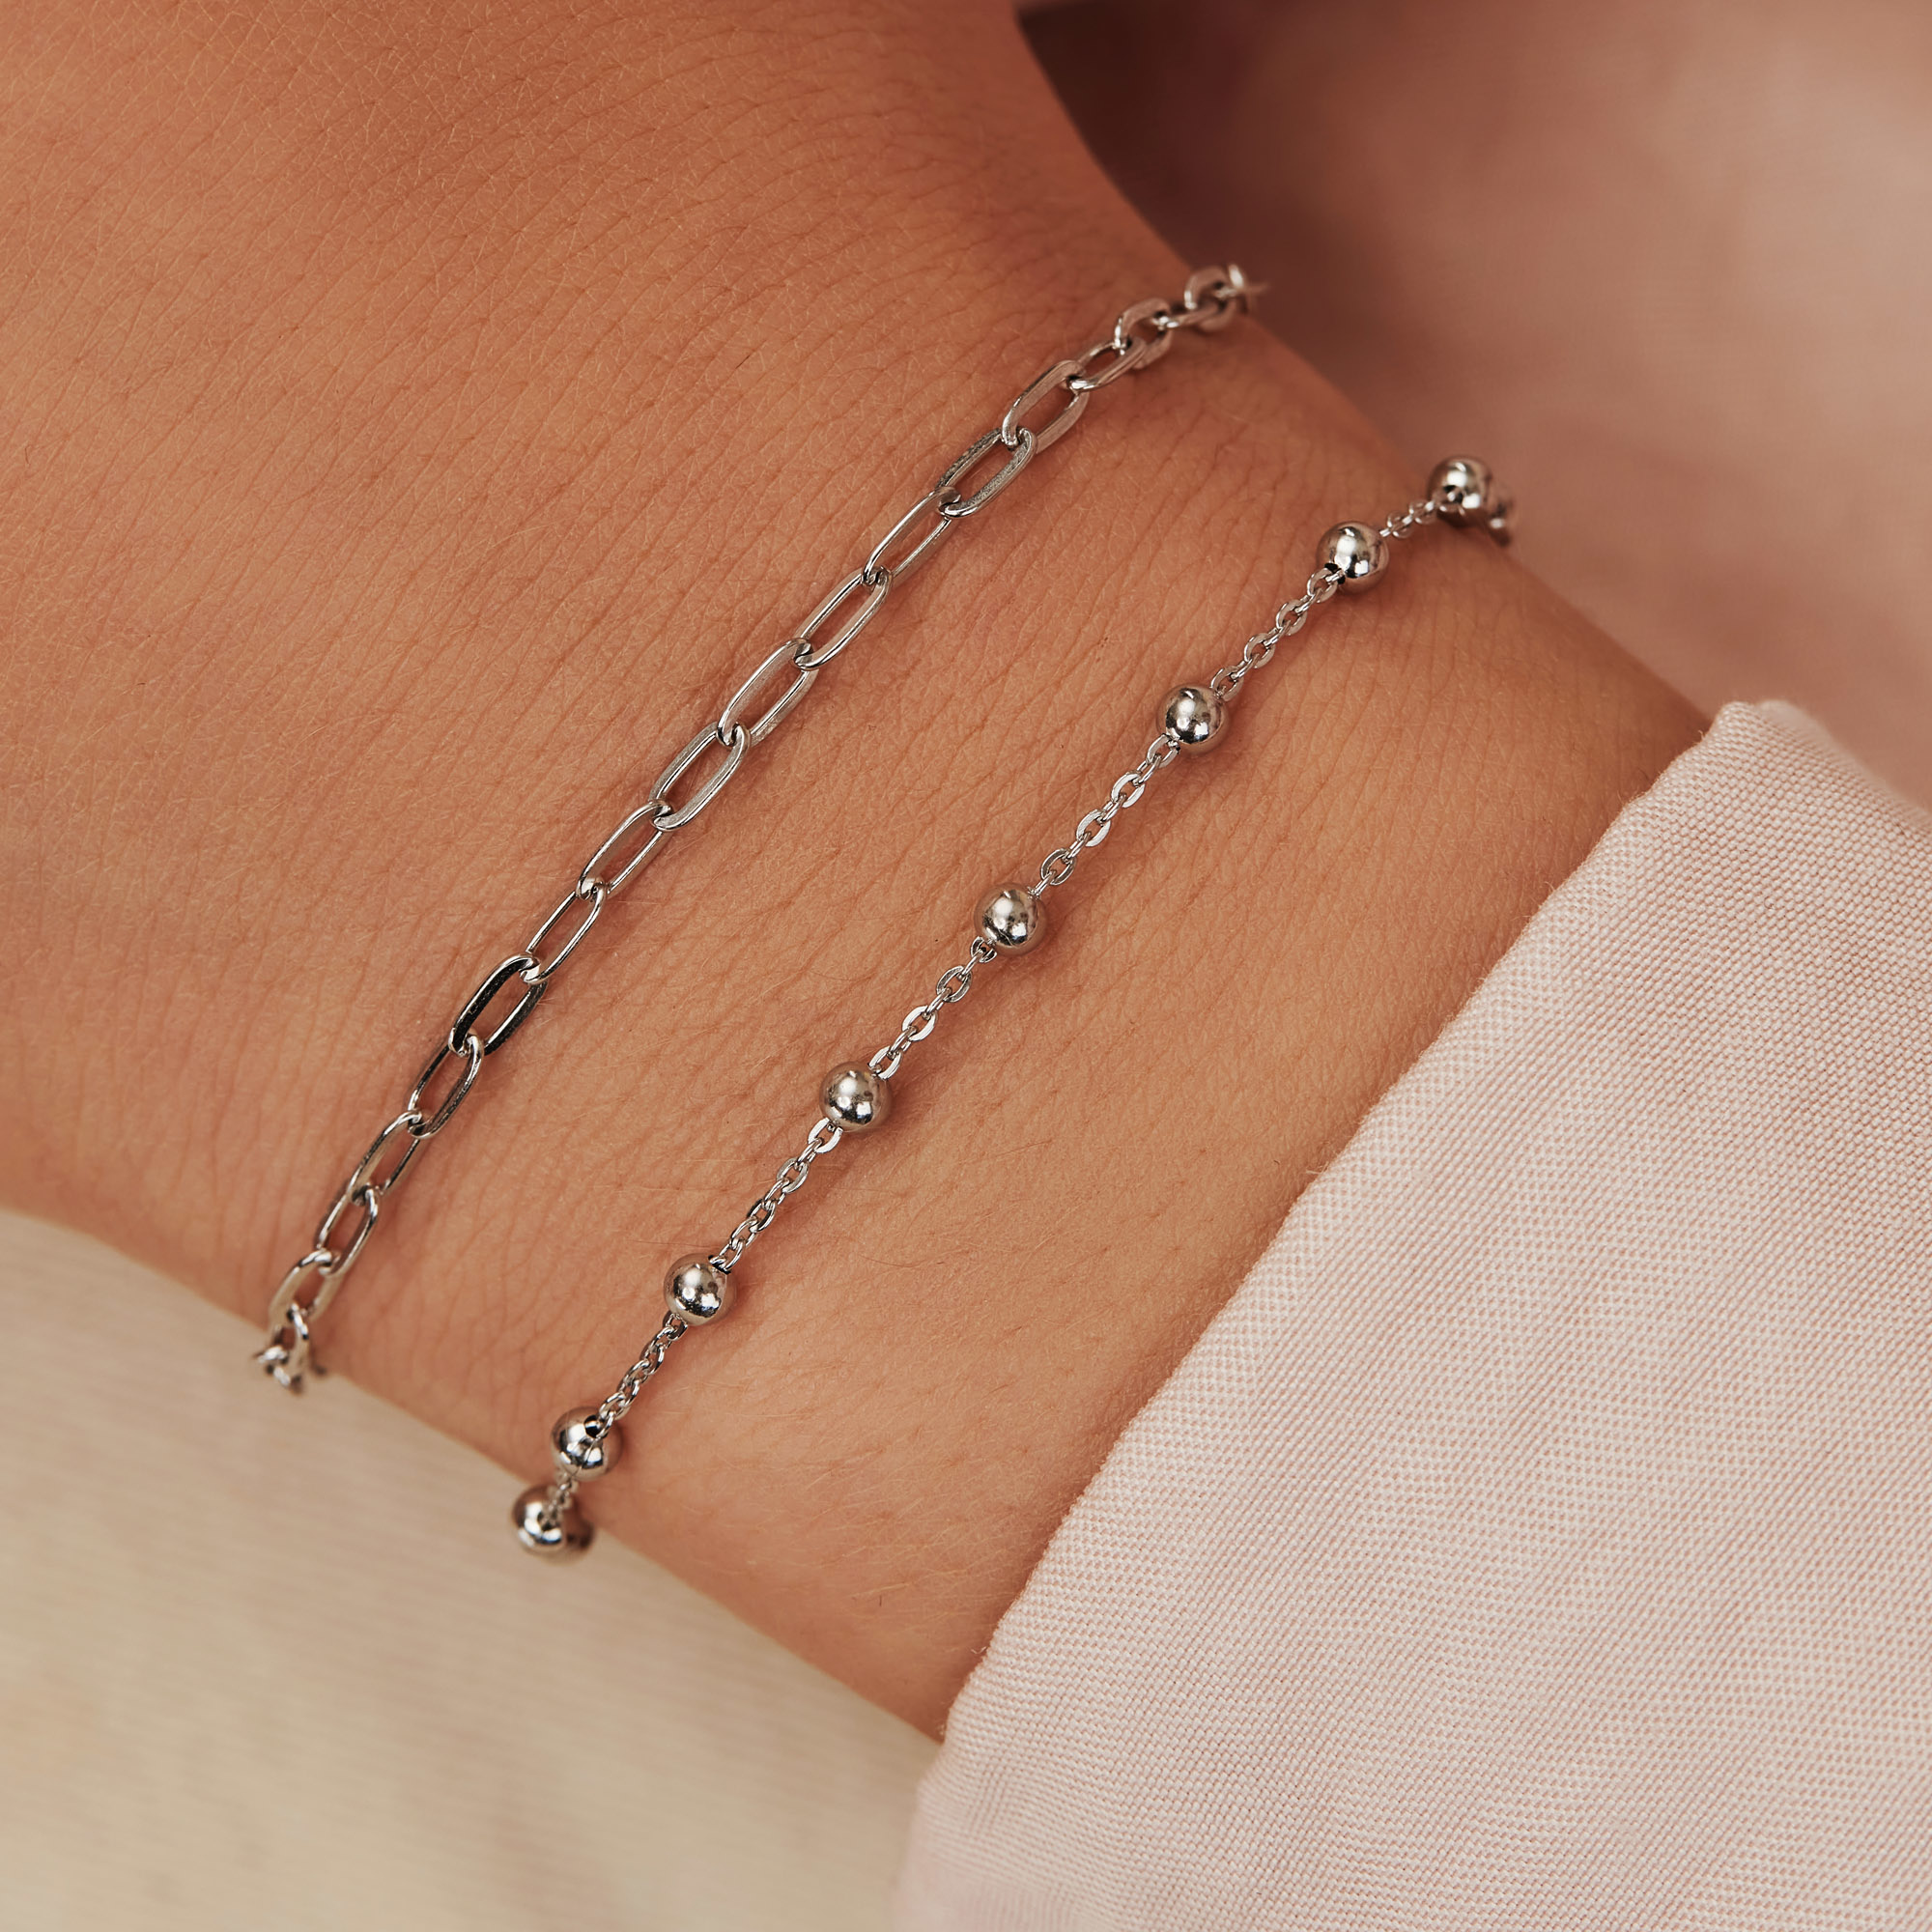 Selected Jewels Julie Maud 925 Sterling Silber Armband